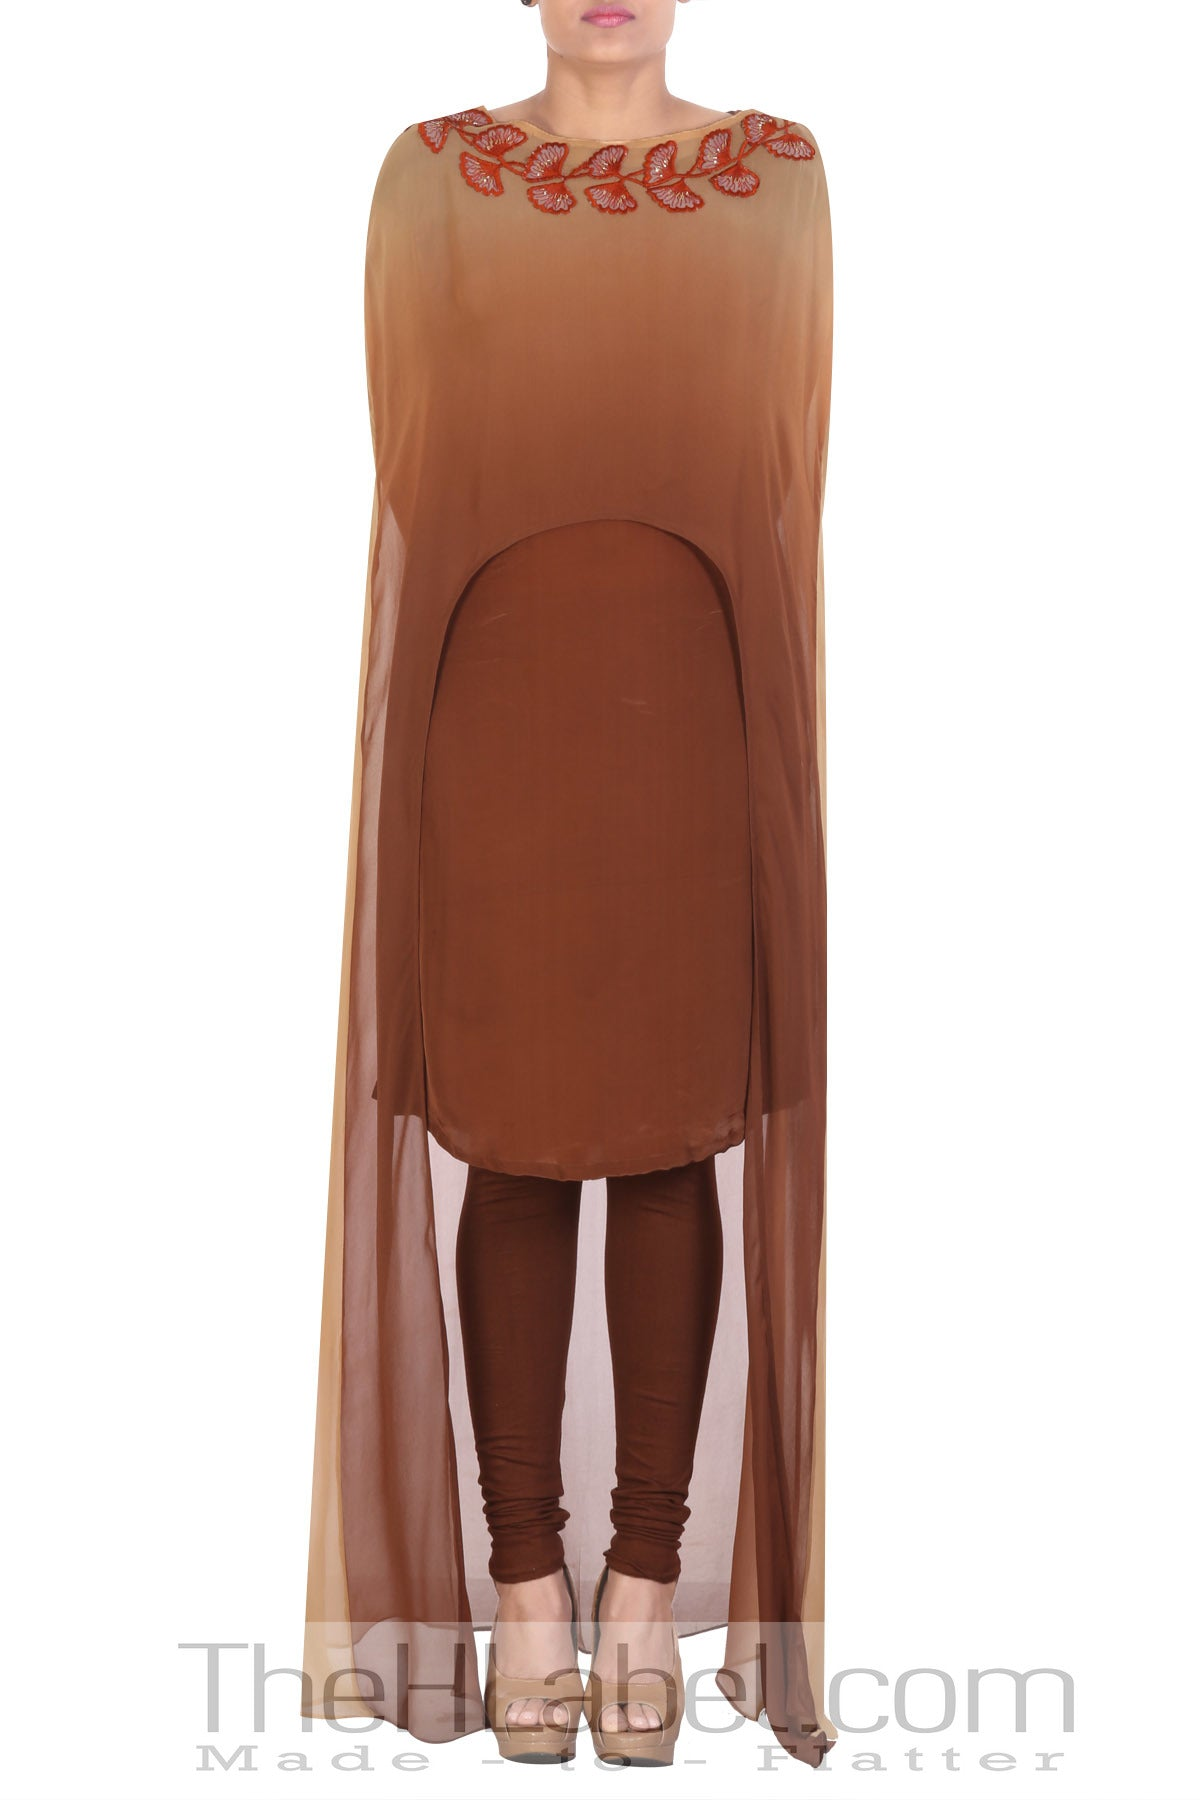 Natural crepe brown tunic with brown embellished cape and leggings